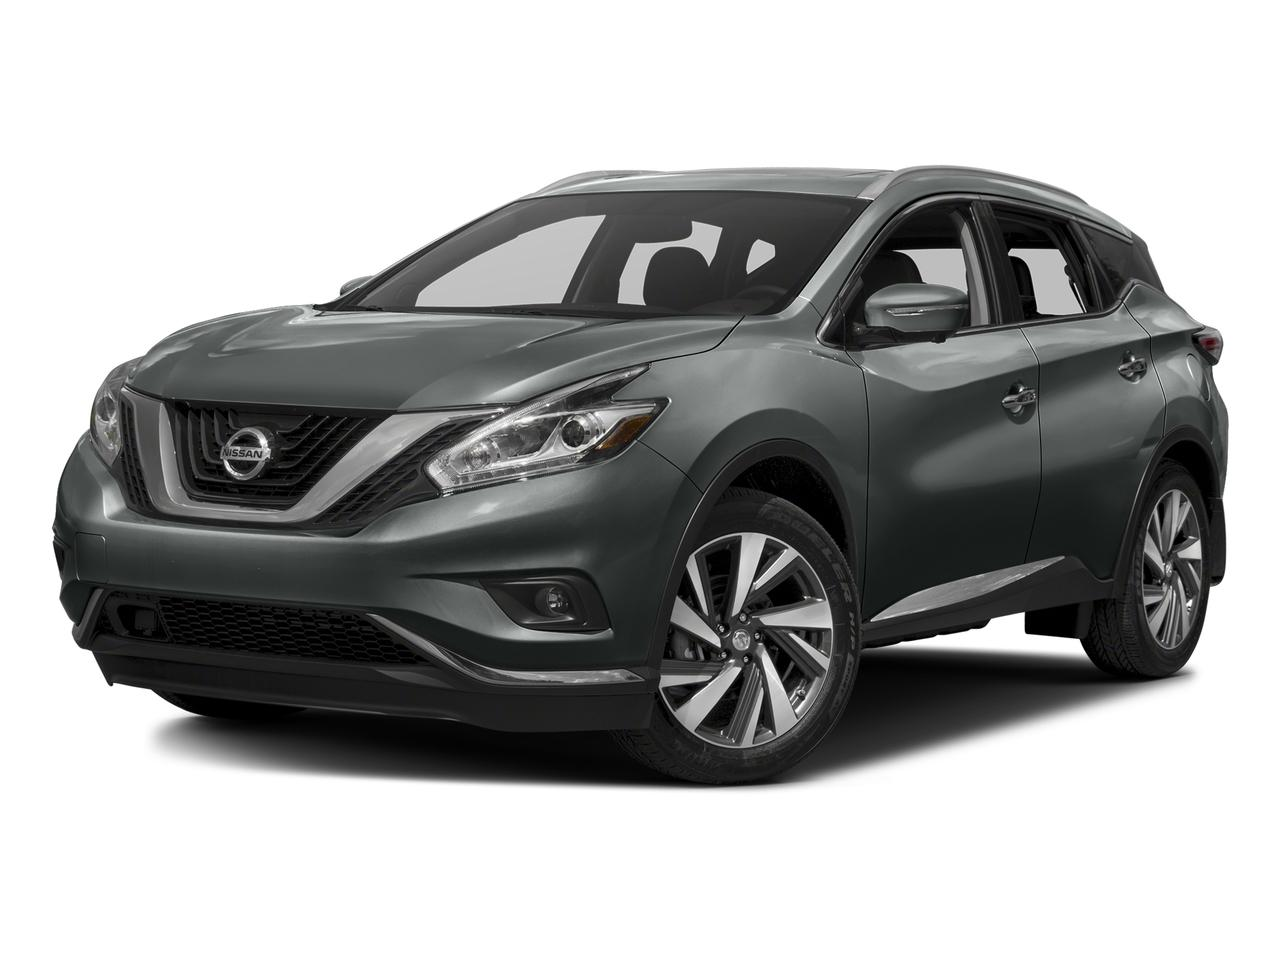 2017 Nissan Murano Vehicle Photo in Westlake, OH 44145